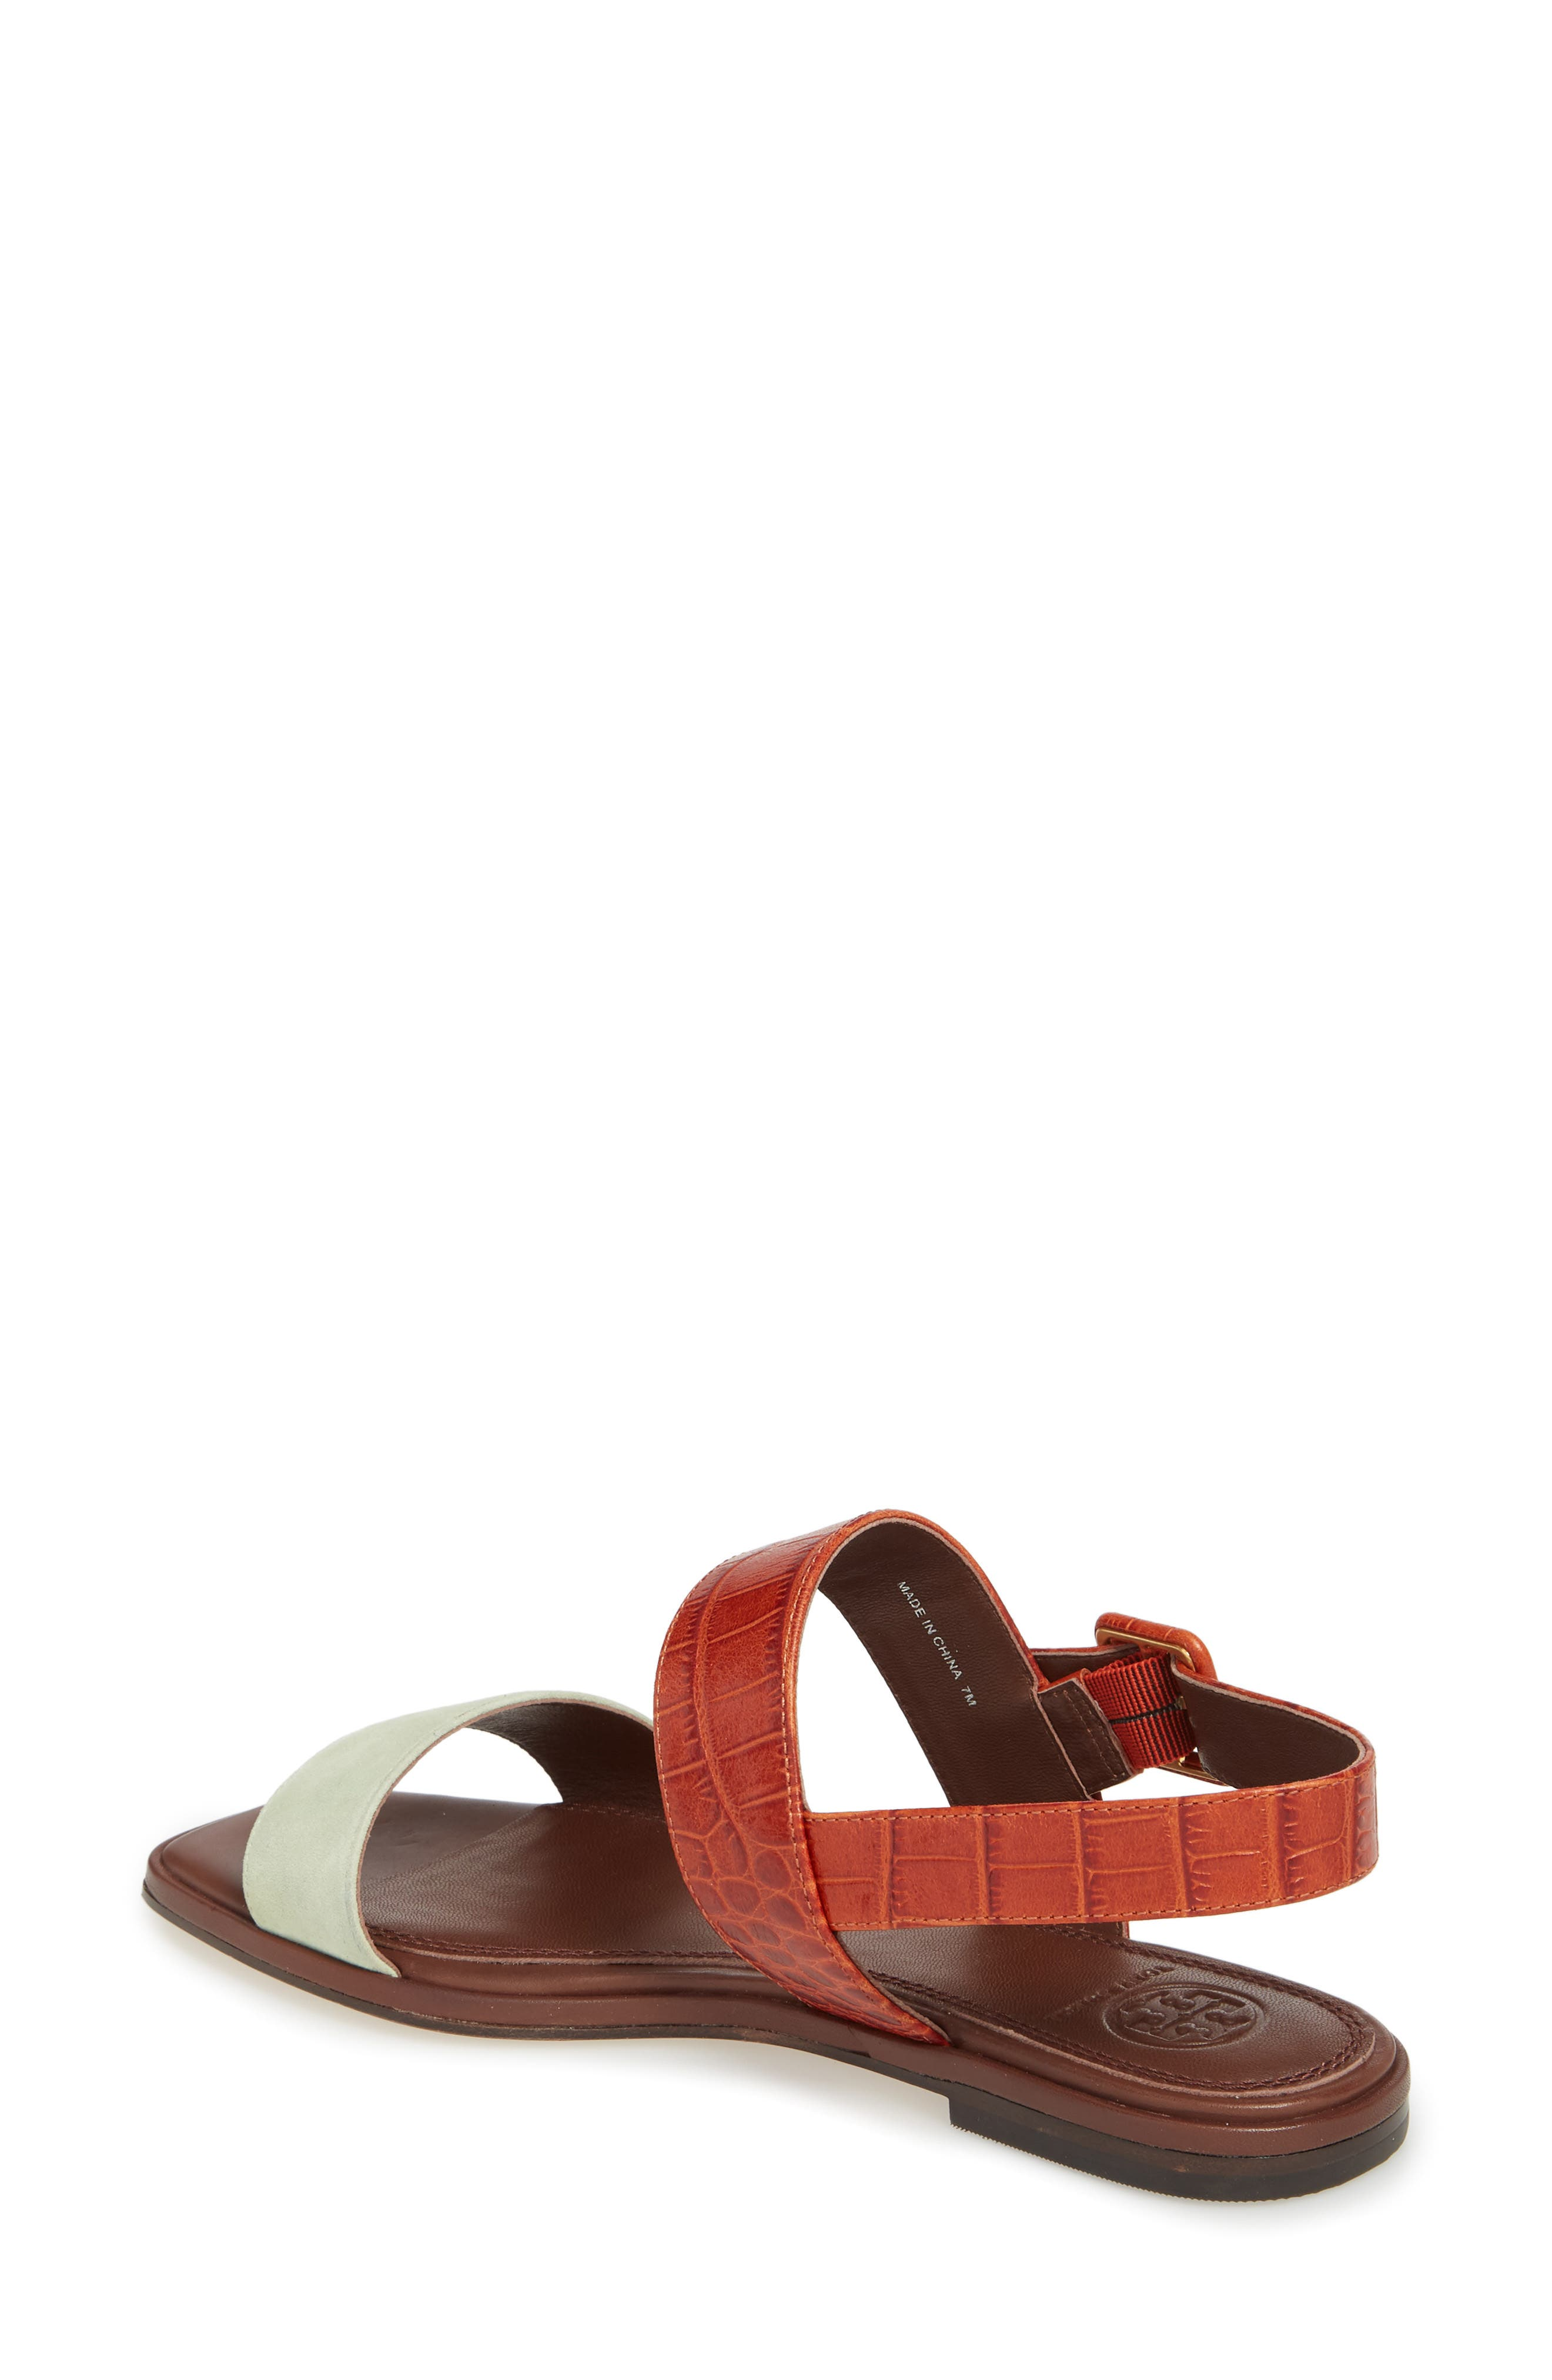 Delaney Double Strap Sandal,                             Alternate thumbnail 12, color,